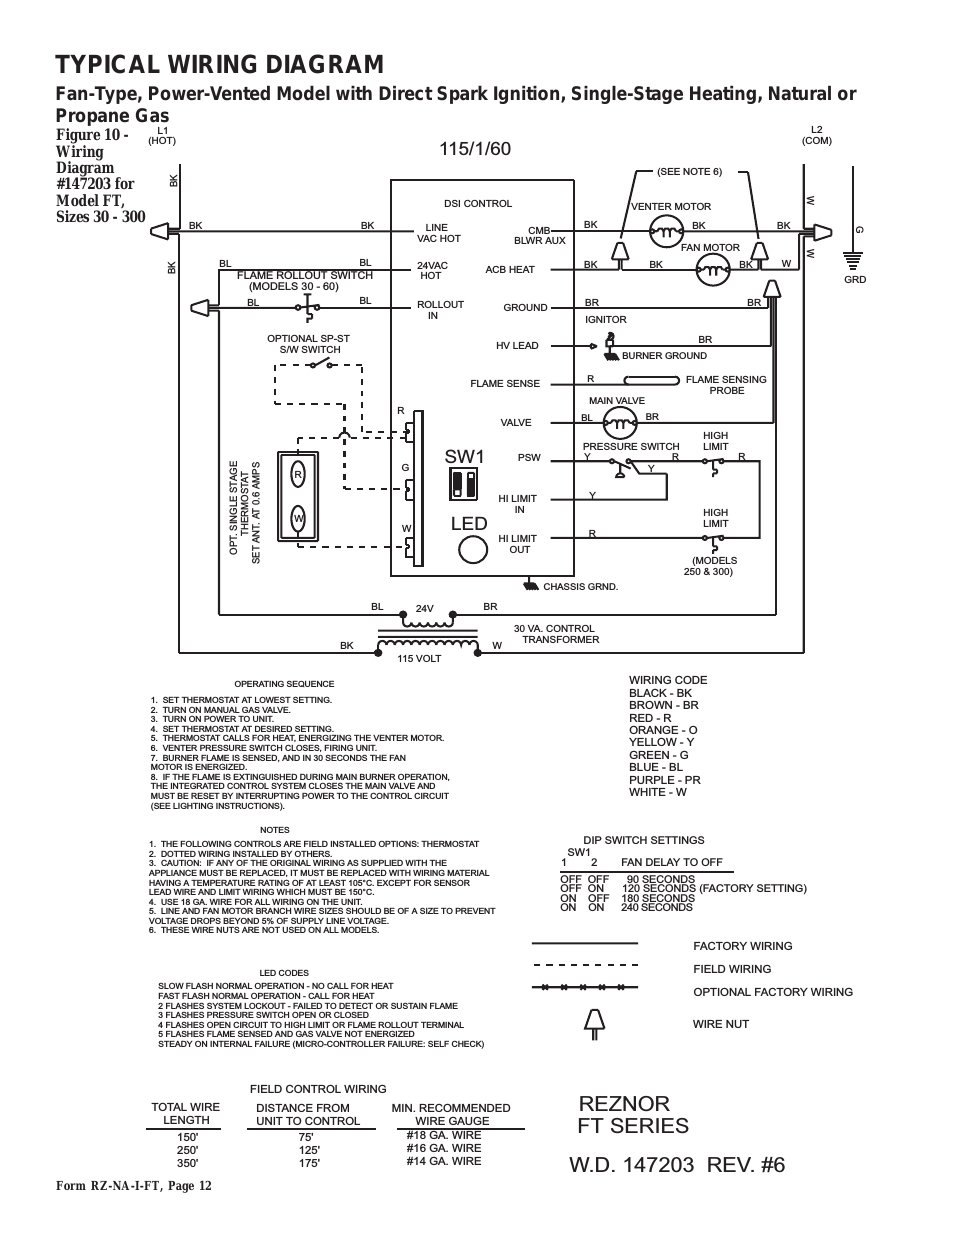 reznor heater wiring diagram Collection-Reznor Heater Wiring Diagram Download 7-q